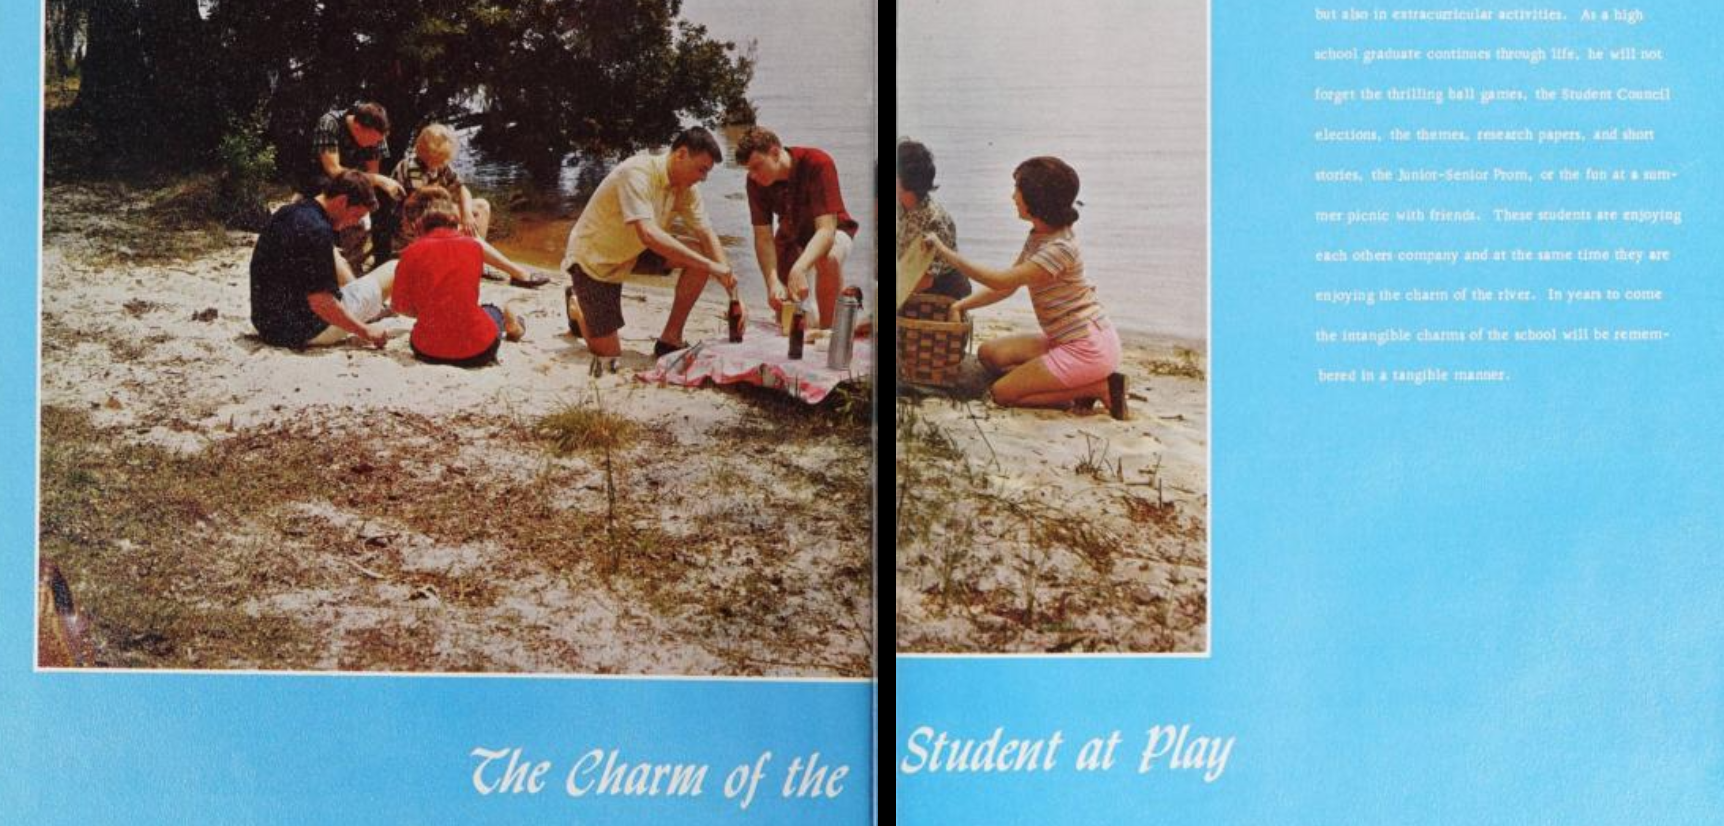 Snippet of a two-page spread in a yearbook. It features a full color photo of students on a beach against a bright blue background. Underneath the photo, in white text, it reads: The charm of the student at play.